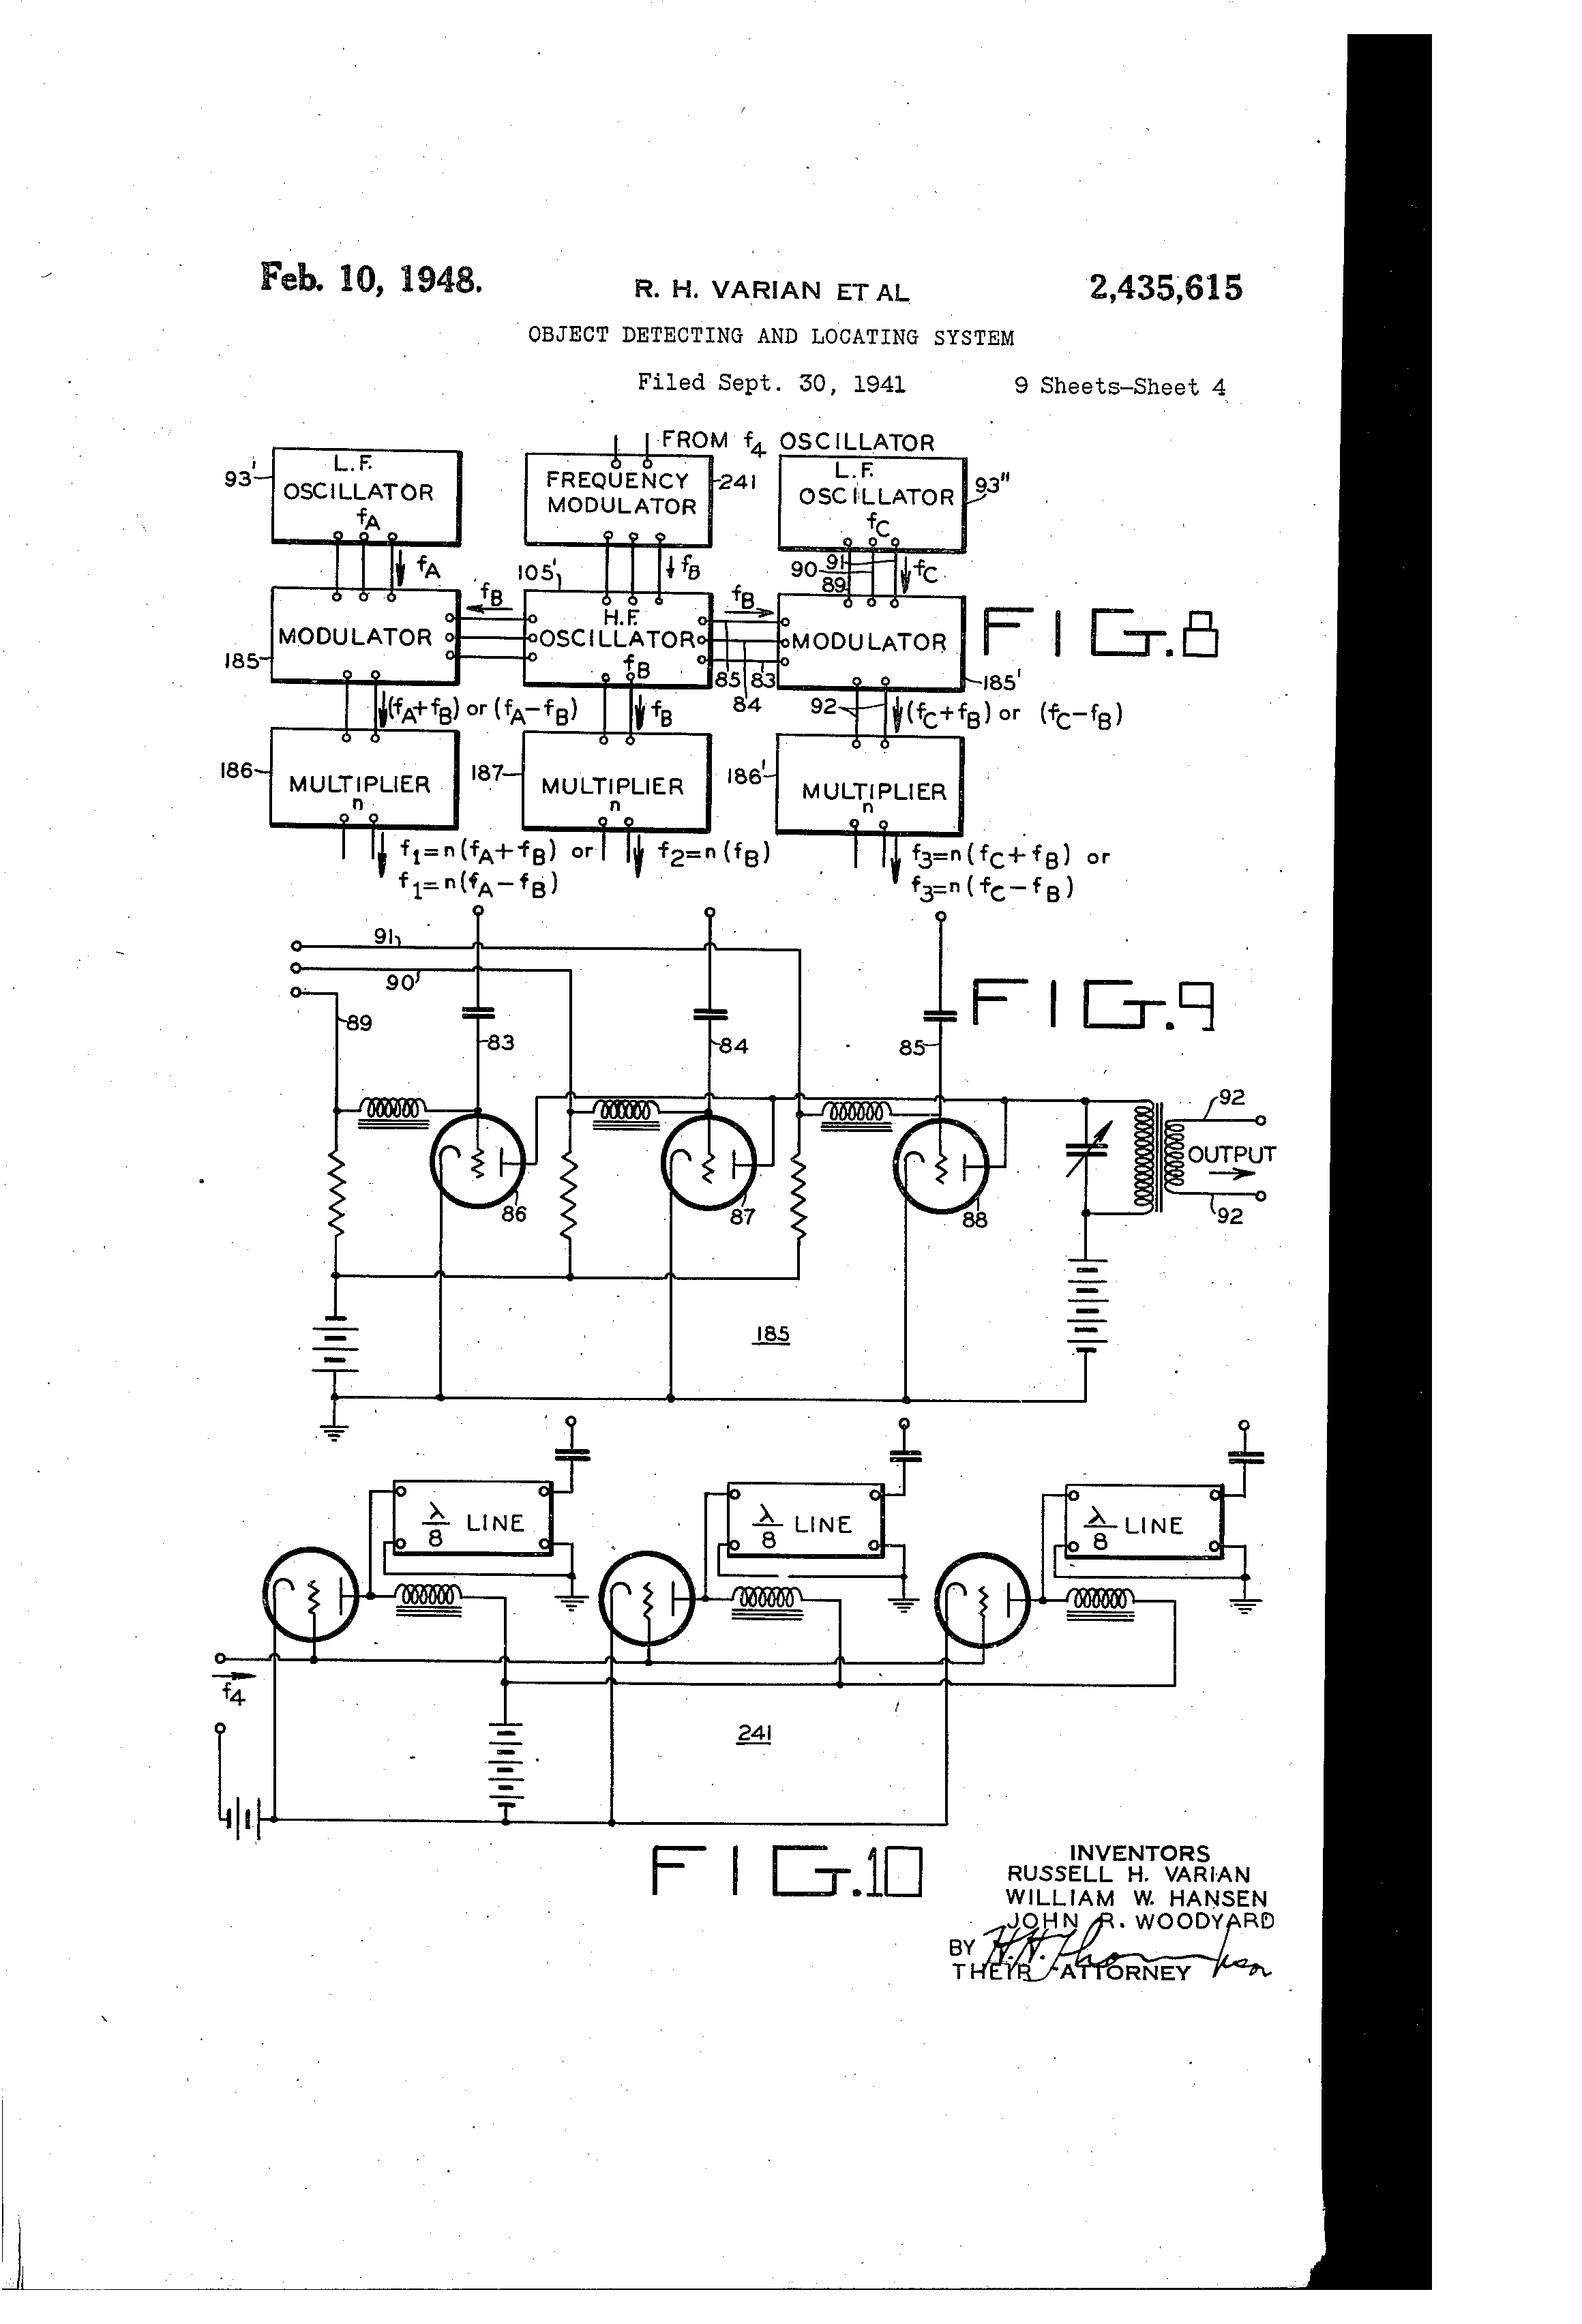 wiring a 3 gang light switch diagram uk | free download wiring